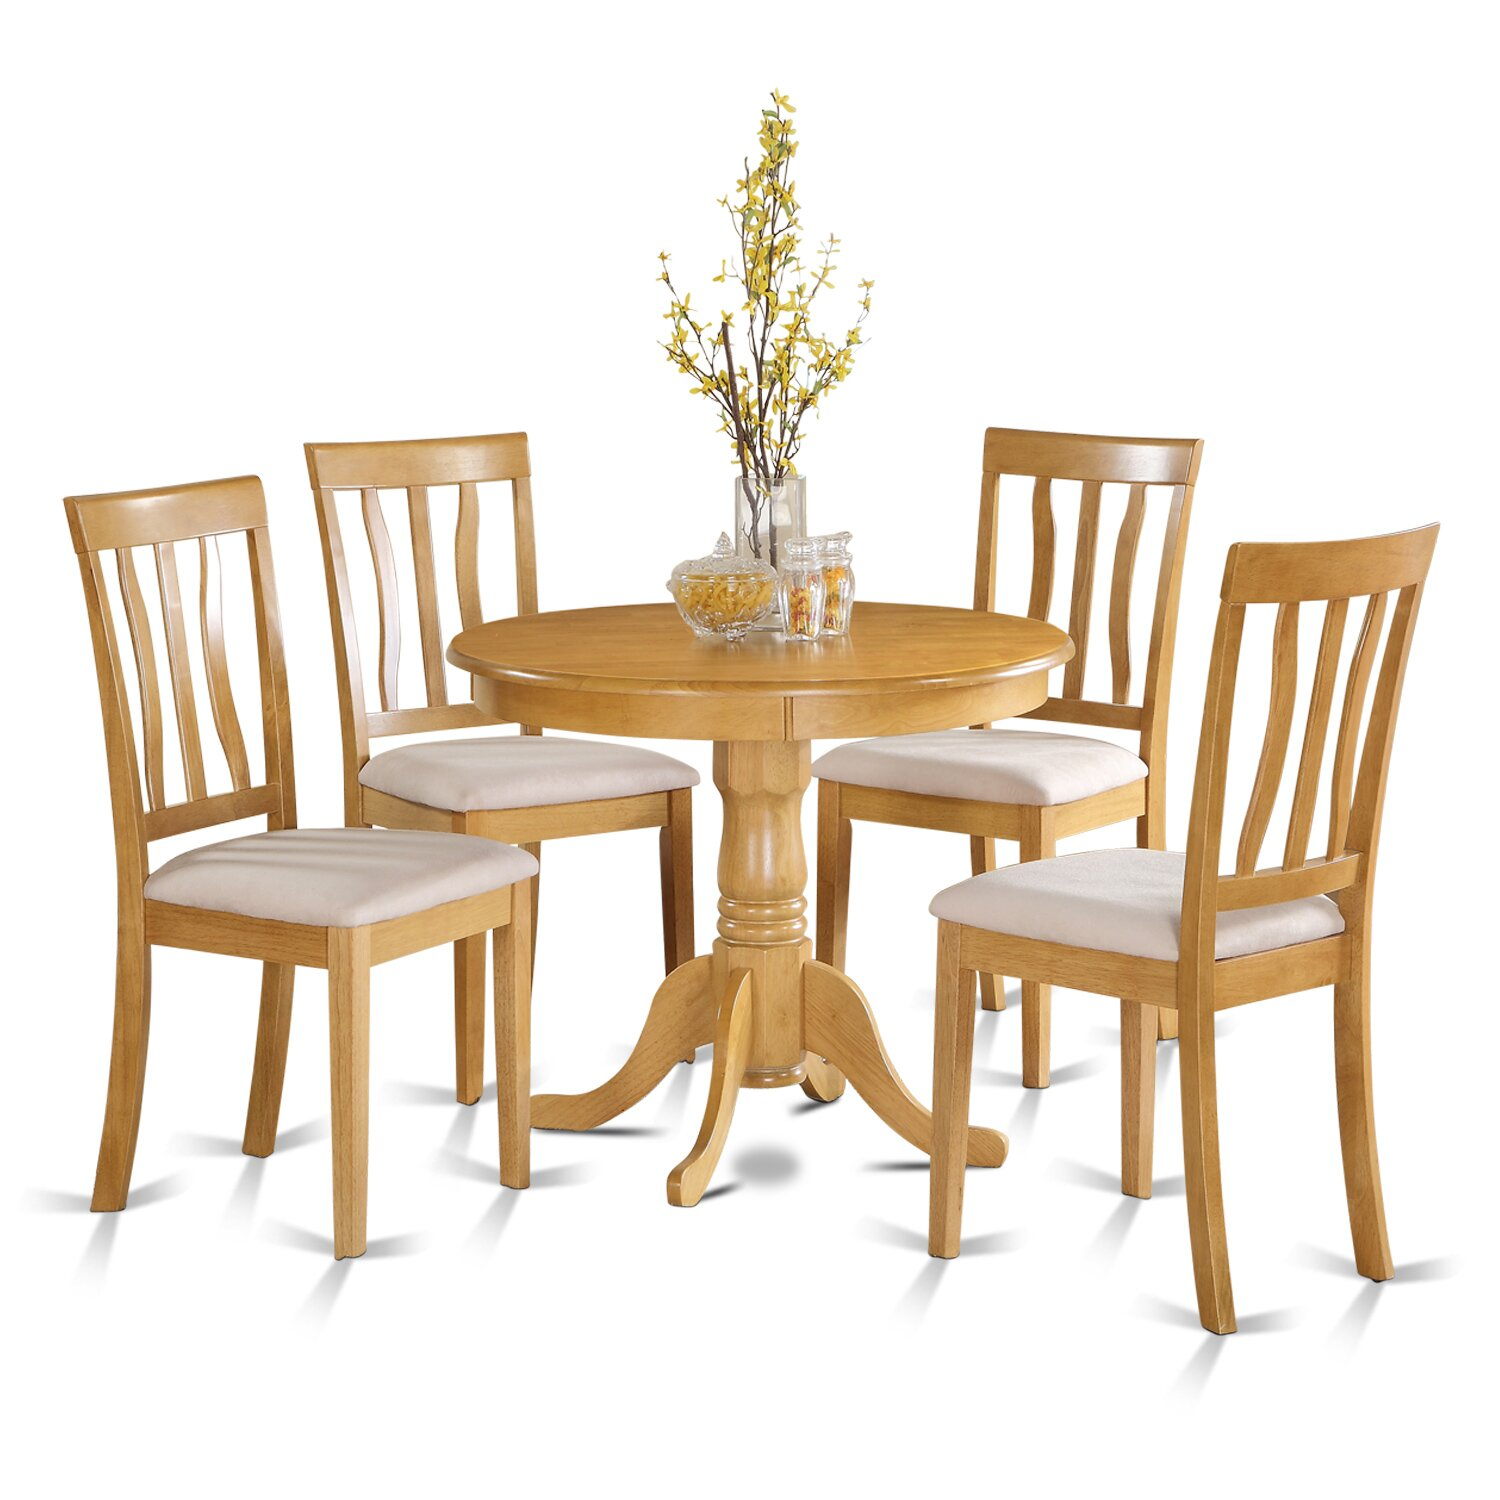 Wooden importers 5 piece dining set reviews wayfair for Dining room kitchen sets